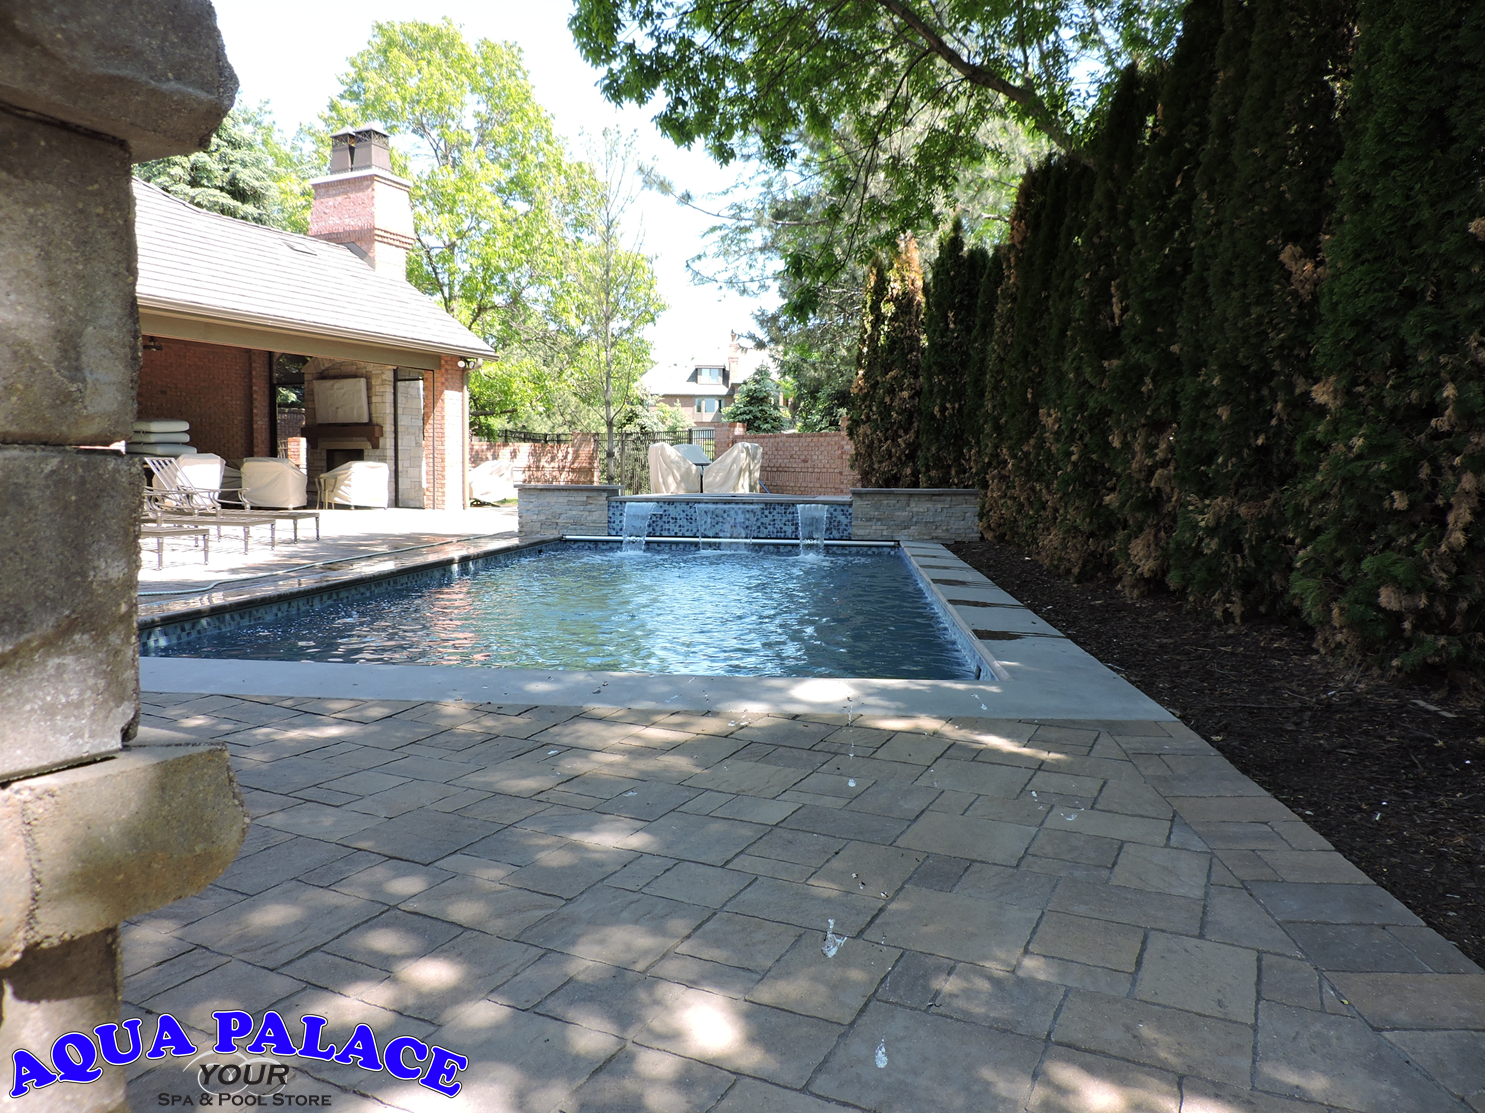 custom inground pools. Fiberglass Inground Pool With Custom Water Features, Tile And Auto Cover. Enjoy The Hot Pools